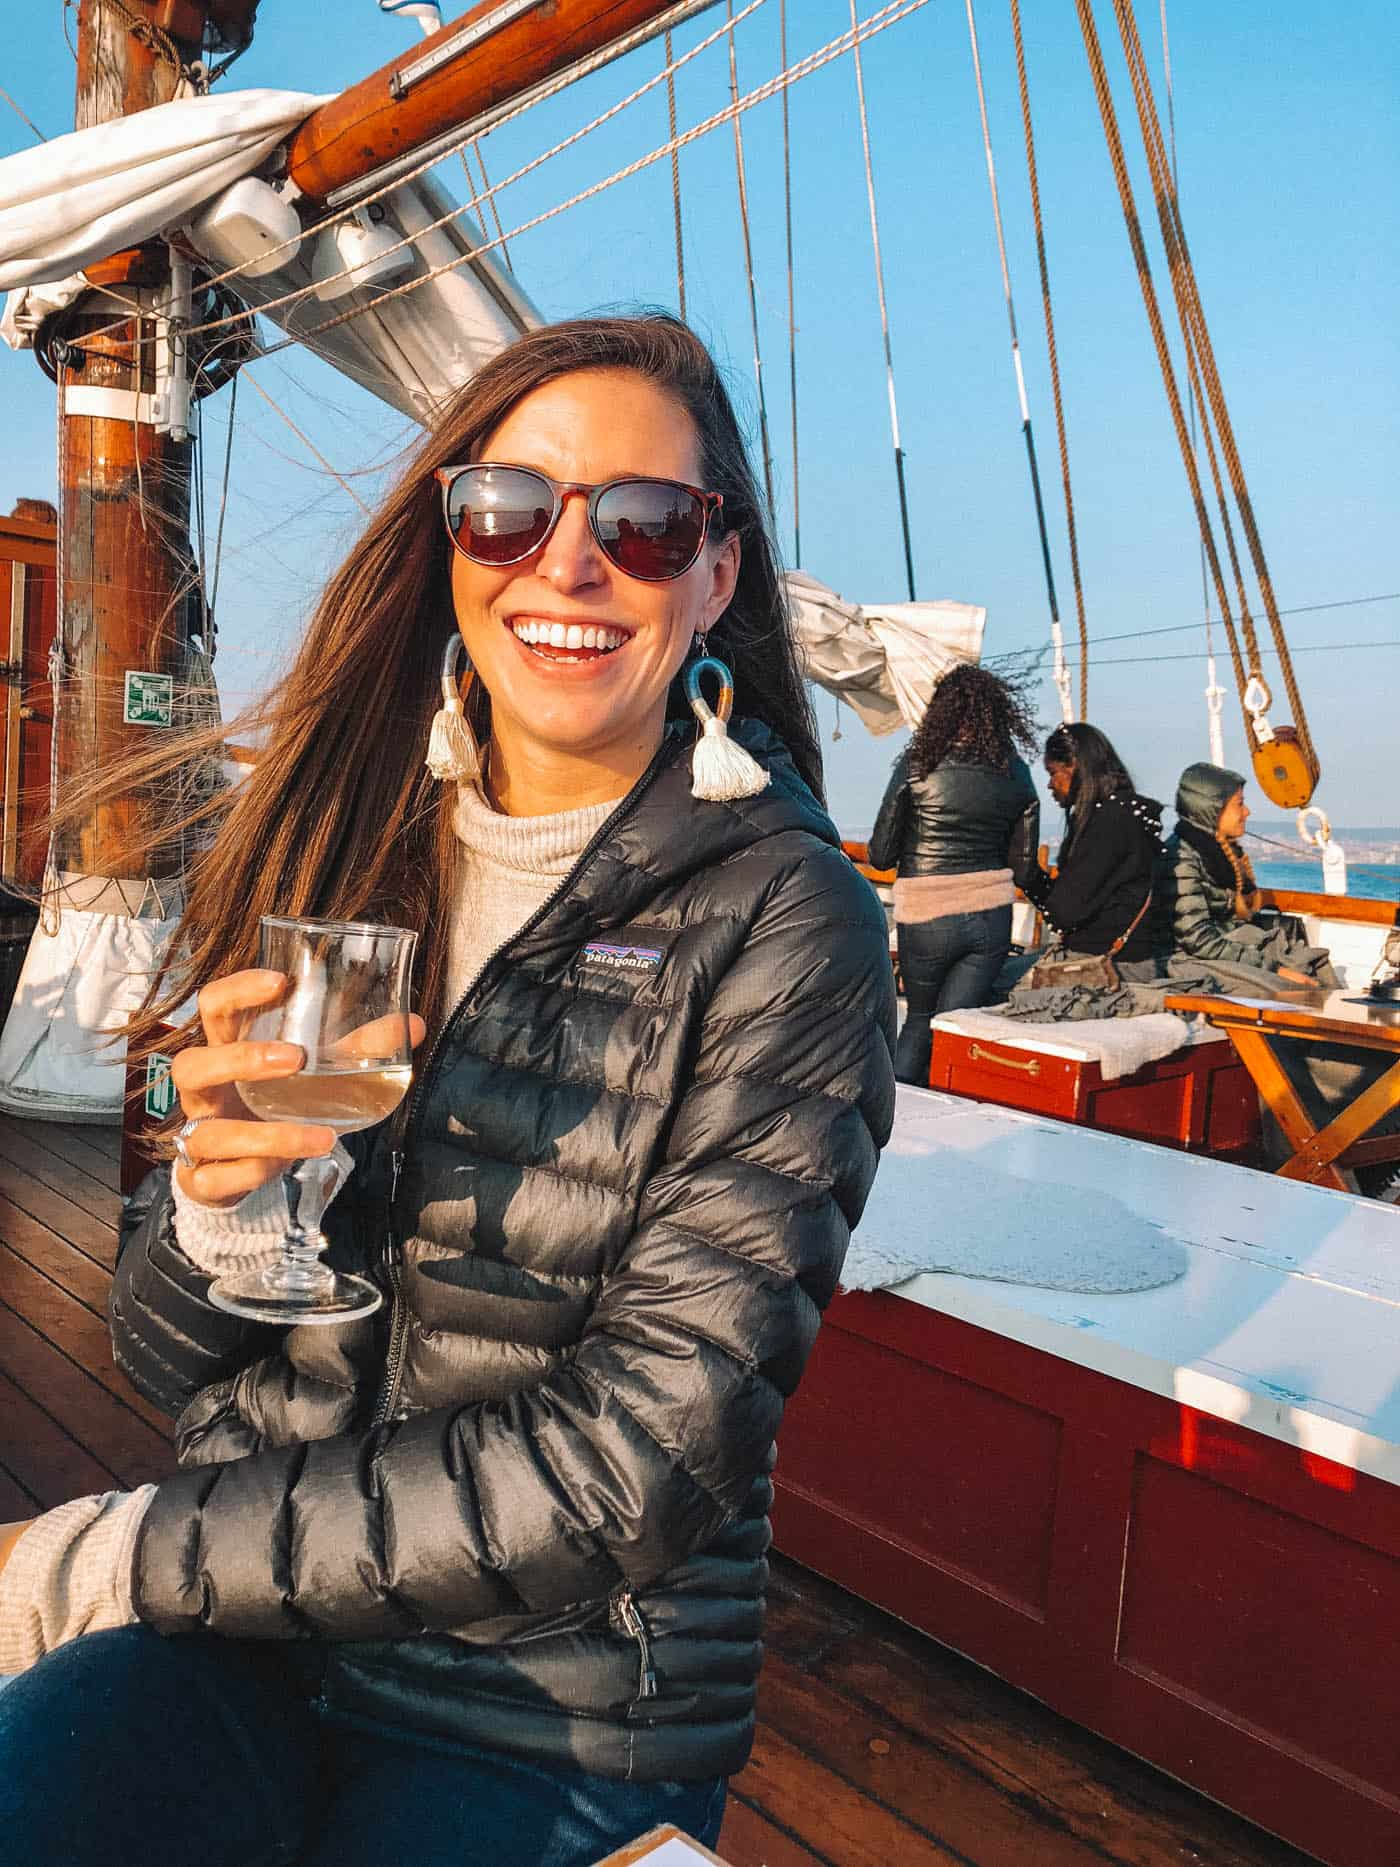 How To Spend Two Days In Oslo, Norway